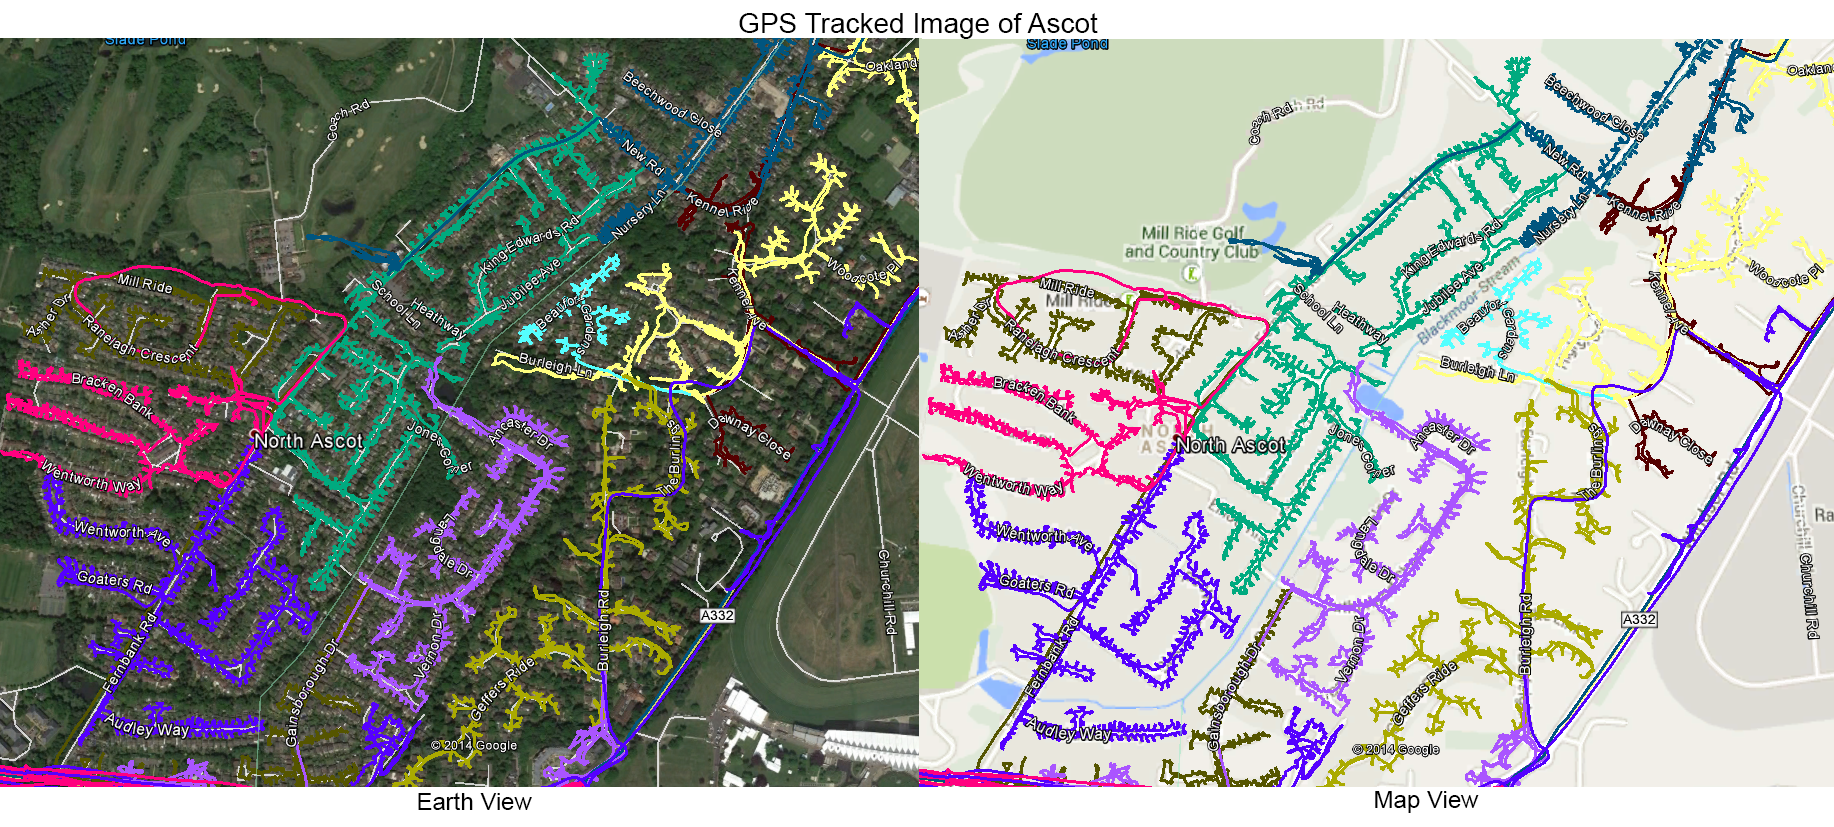 Leaflet Distribution Ascot - GPS Tracked Iamge